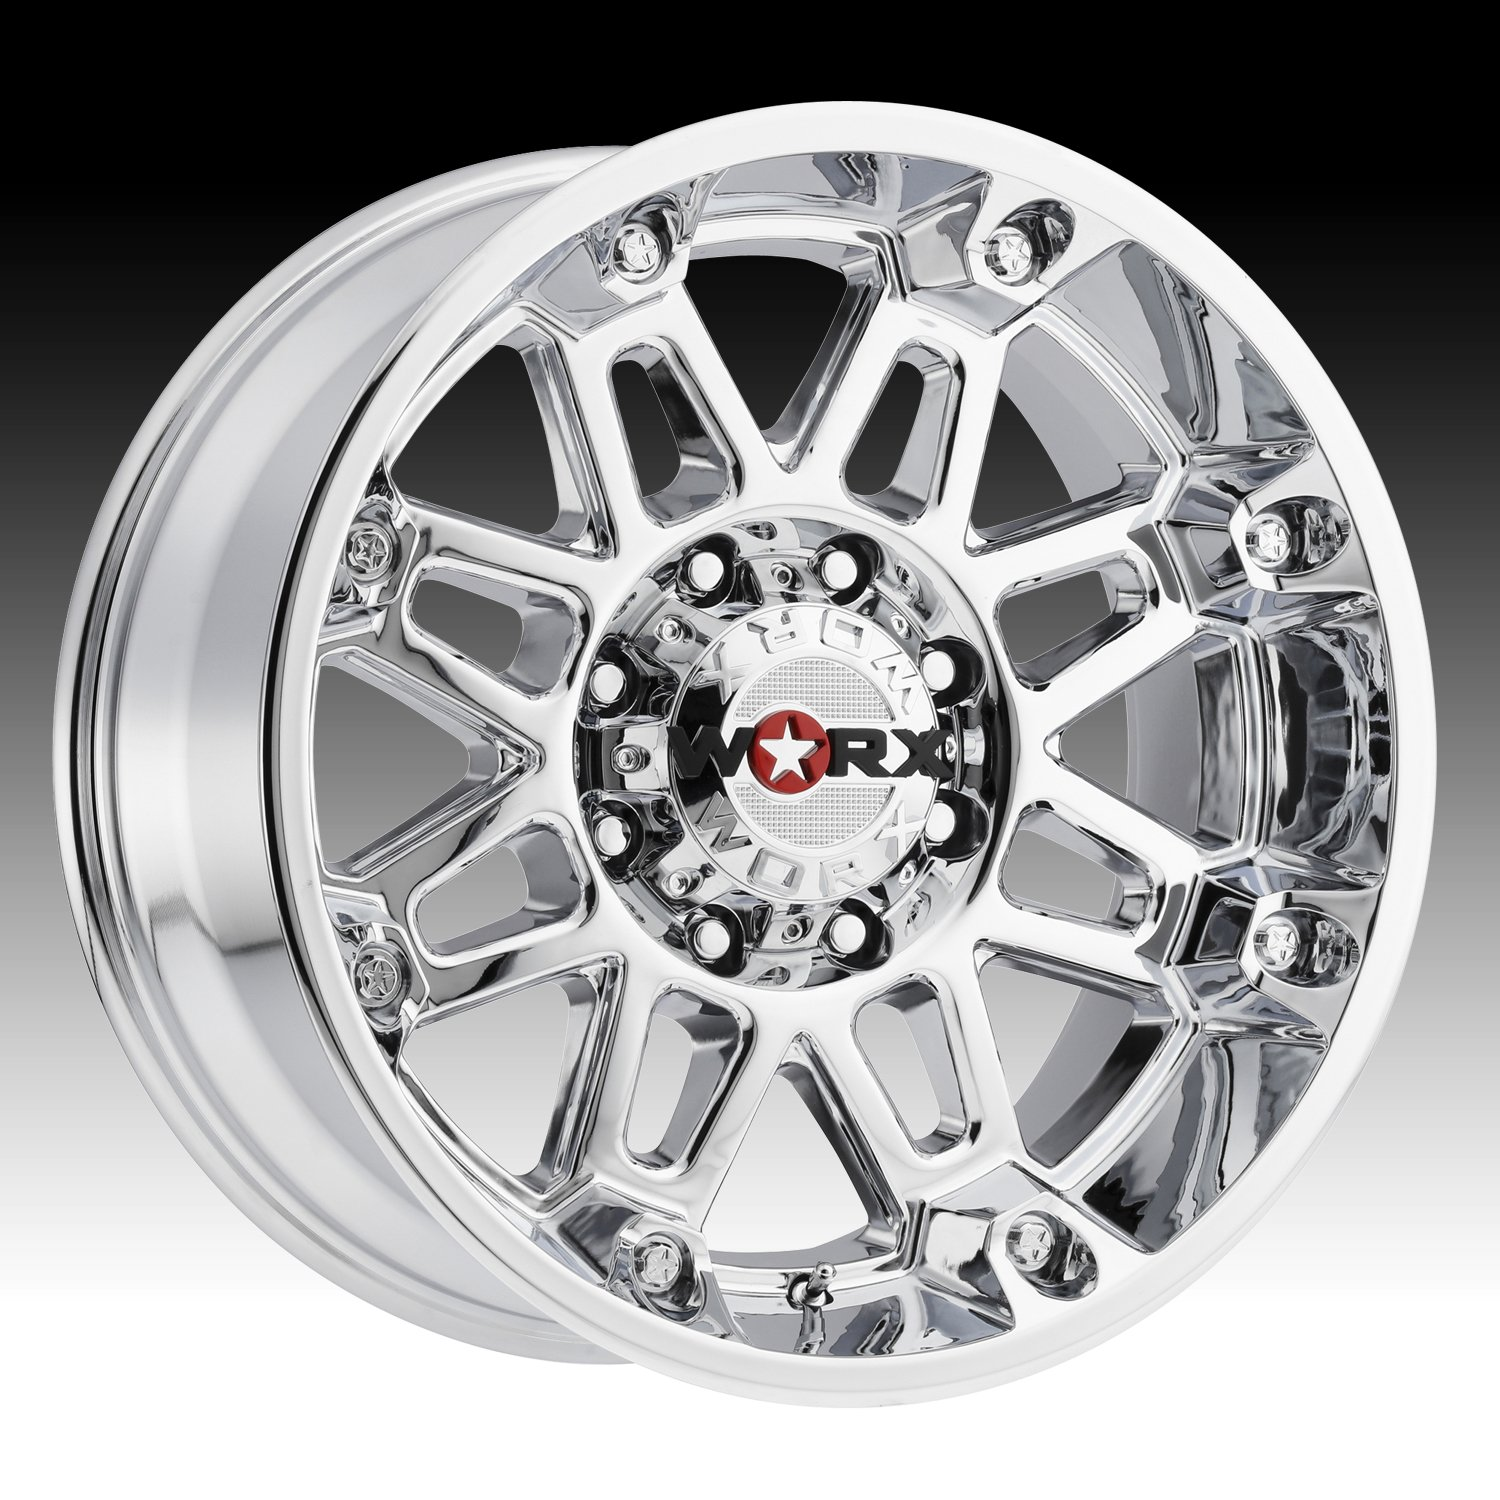 Worx 811C Conquest Chrome Plated Wheel with Chrome Finish (20x9''/8x180mm, +25mm Offset)